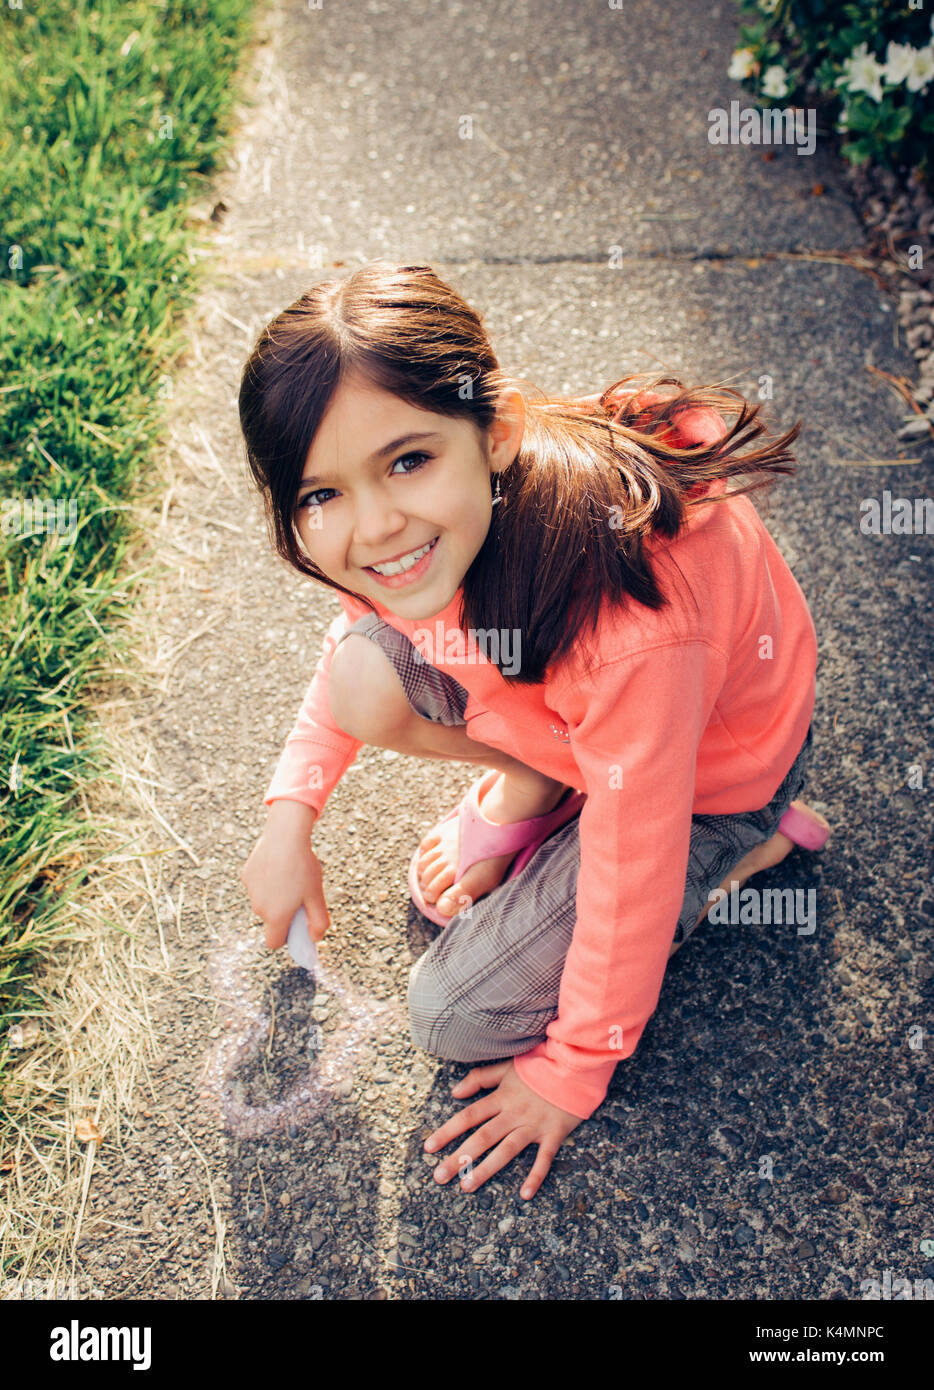 Little girl drawing a heart on the sidewalk with chalk. - Stock Image